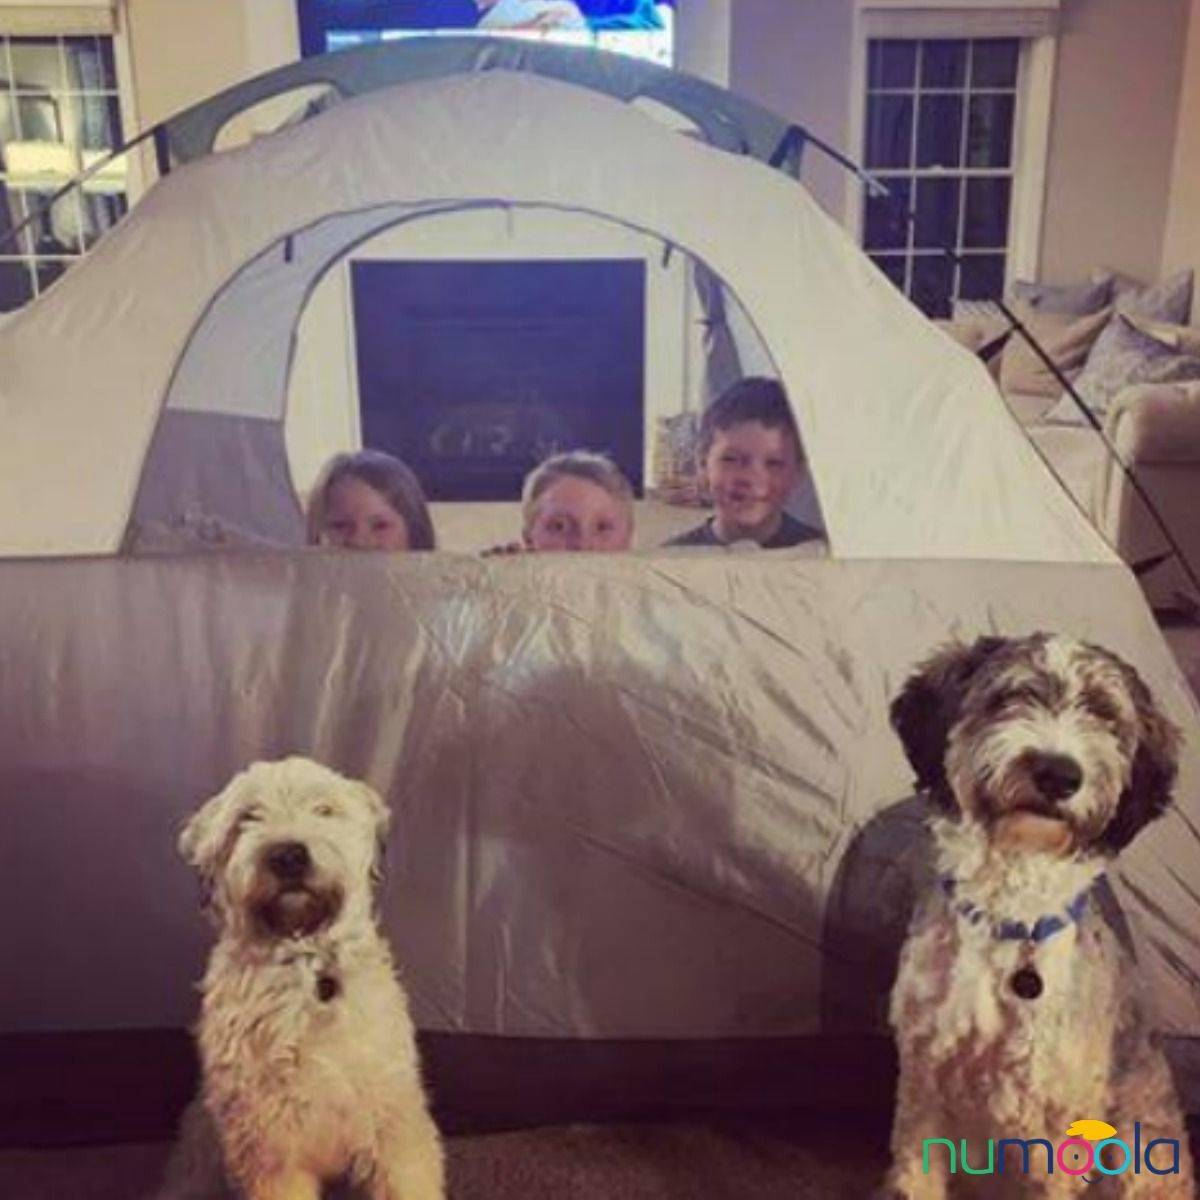 Three kids sit in a tent in a living room, and two dogs stand outside the tent.